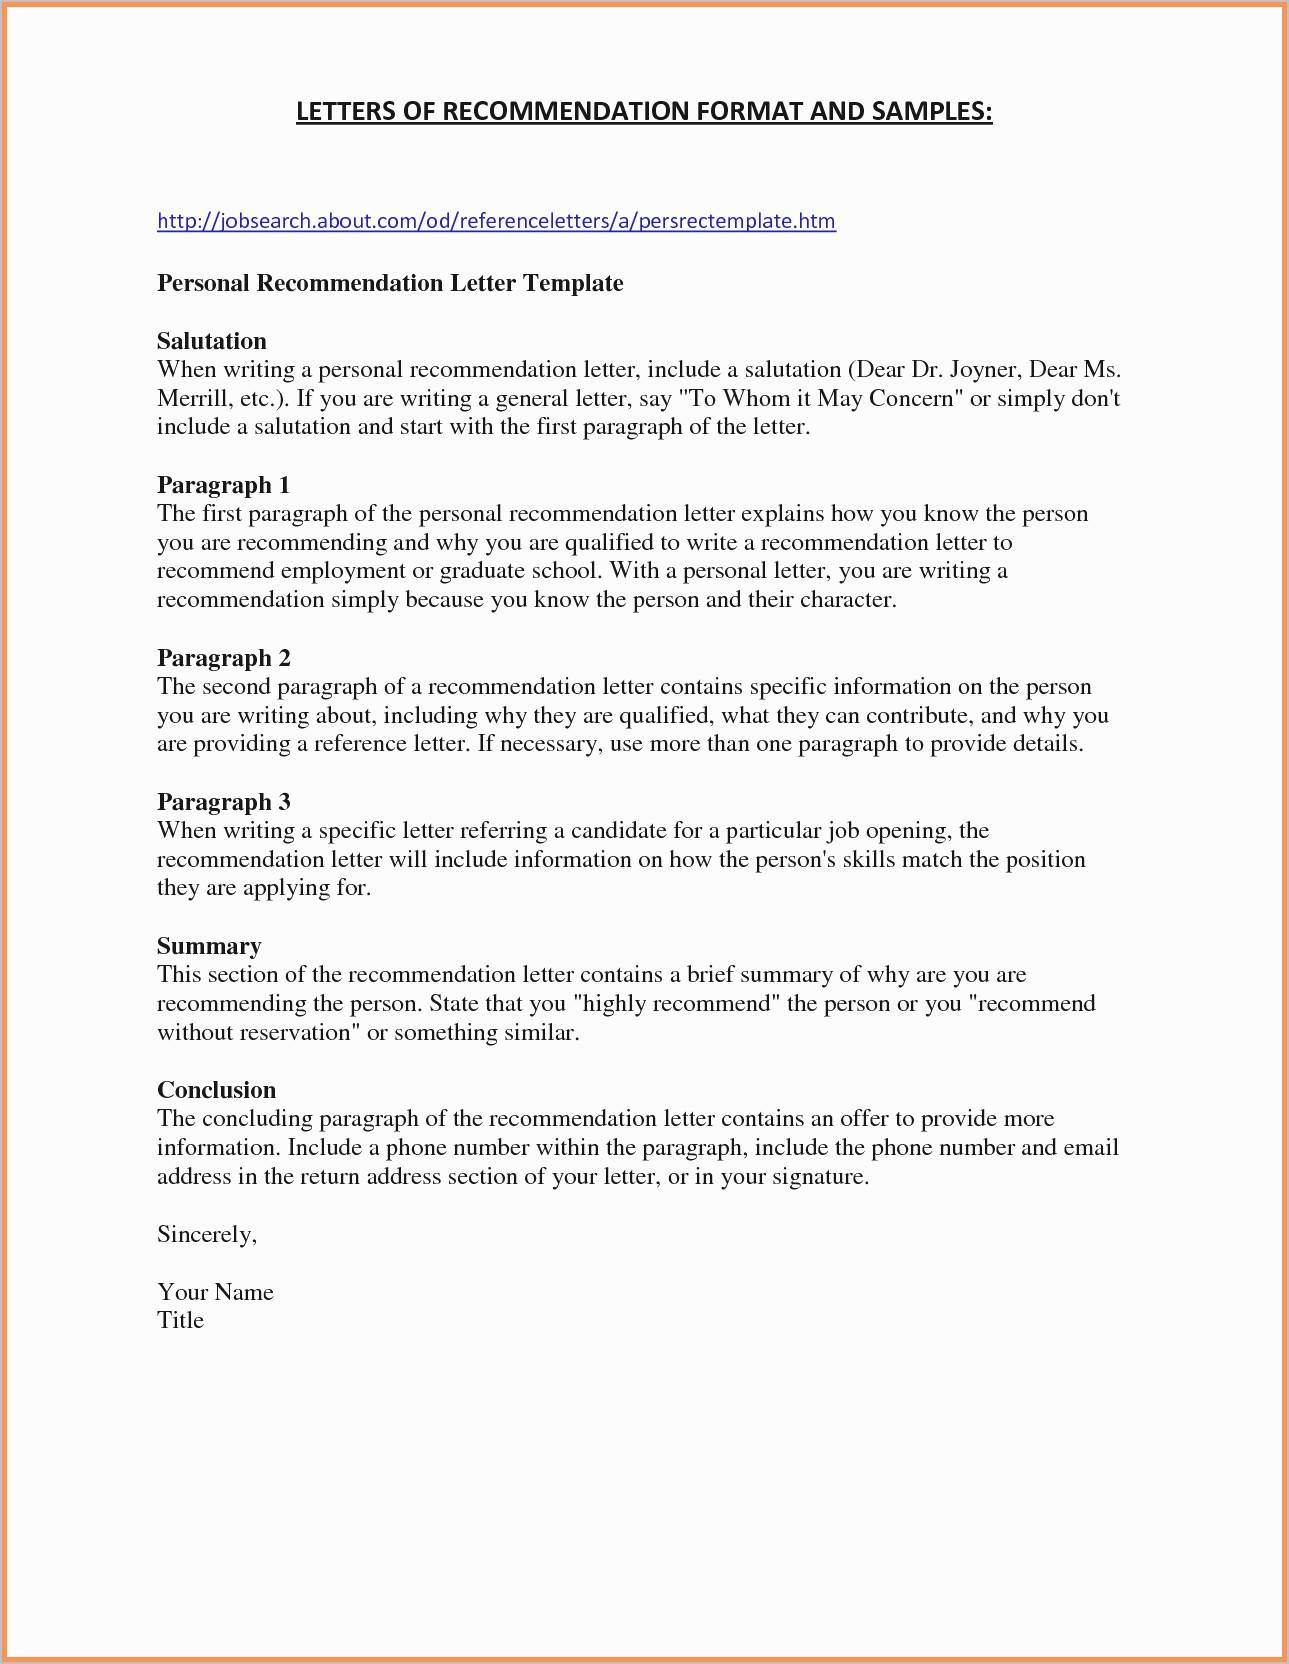 Medical Reference Letter Template - Template for asking for Donations Lovely Writing A Letter Re